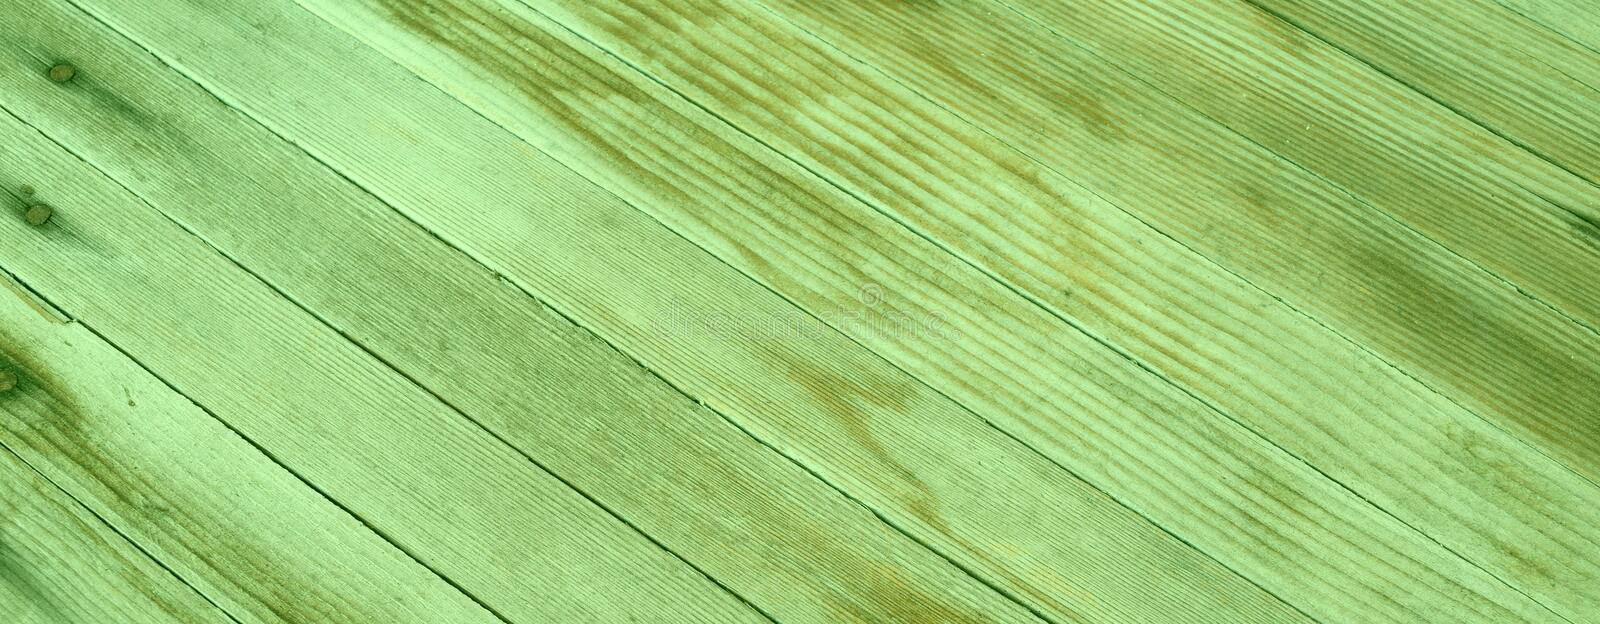 Painted wooden board royalty free stock photo